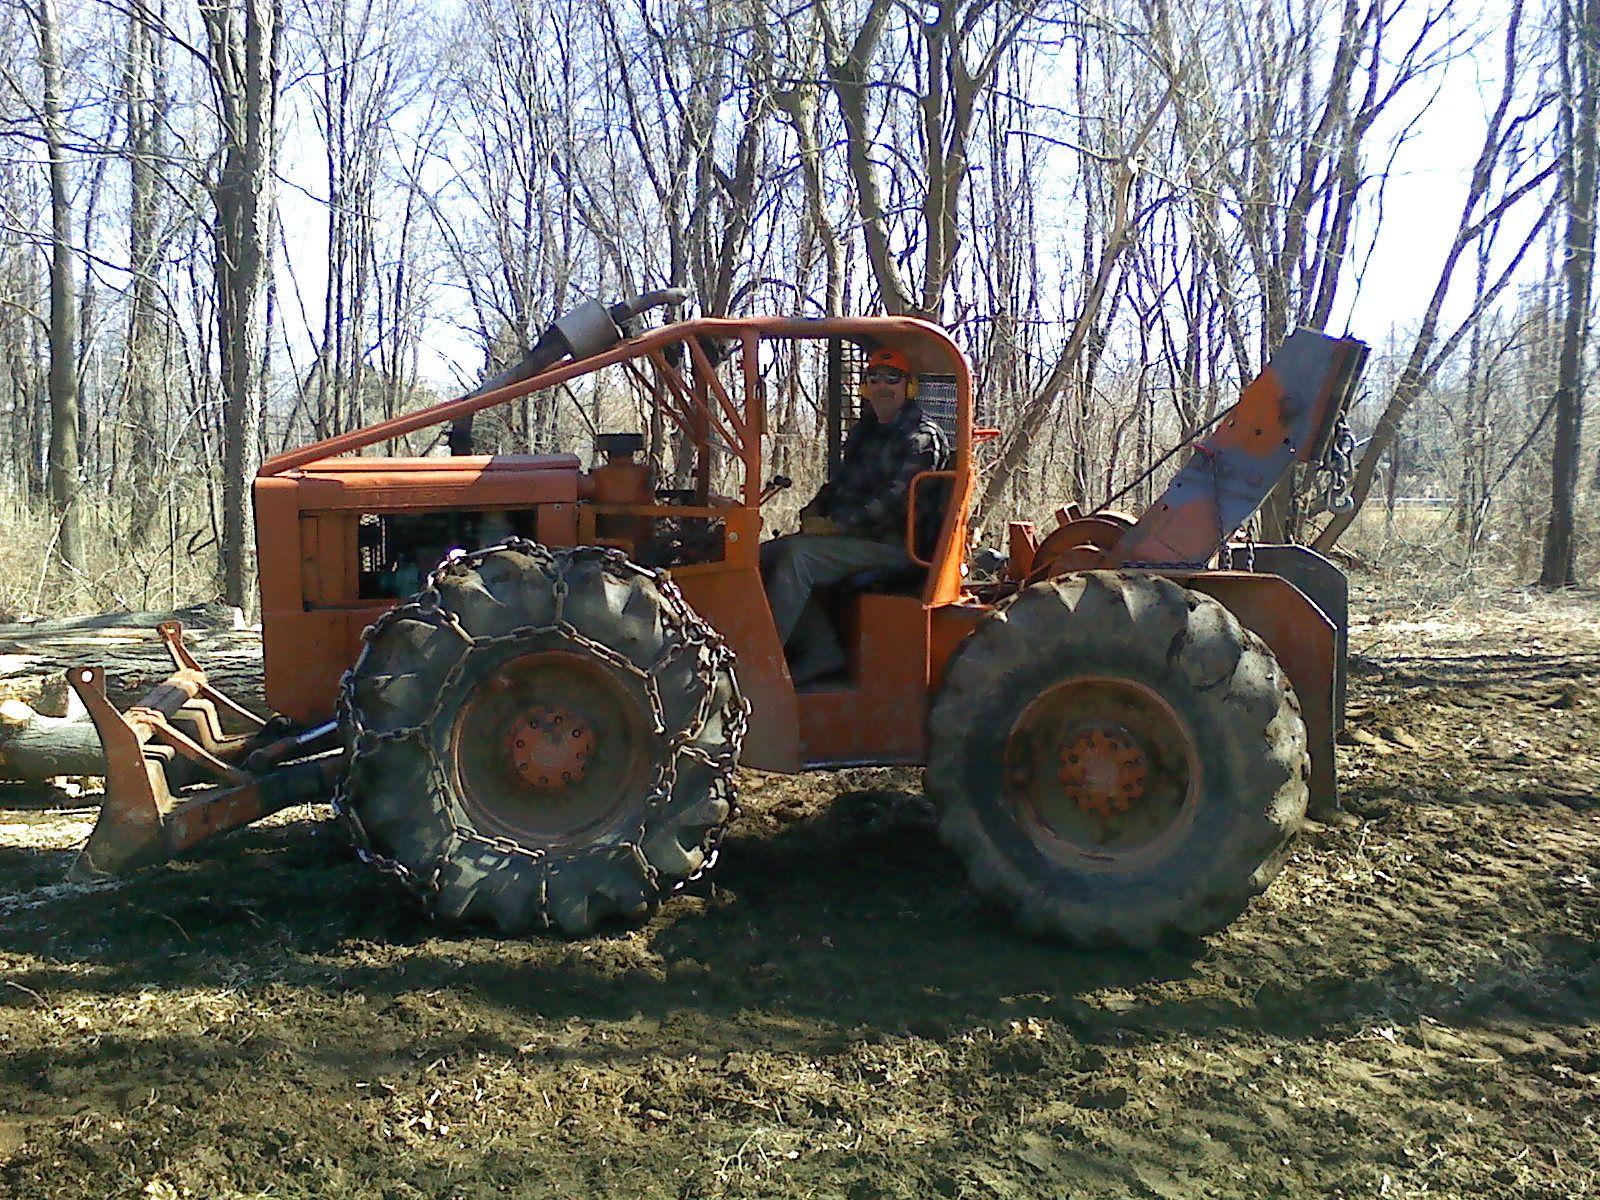 Wooden Toy Log Skidder : Logging skidders forestry solutions skidder